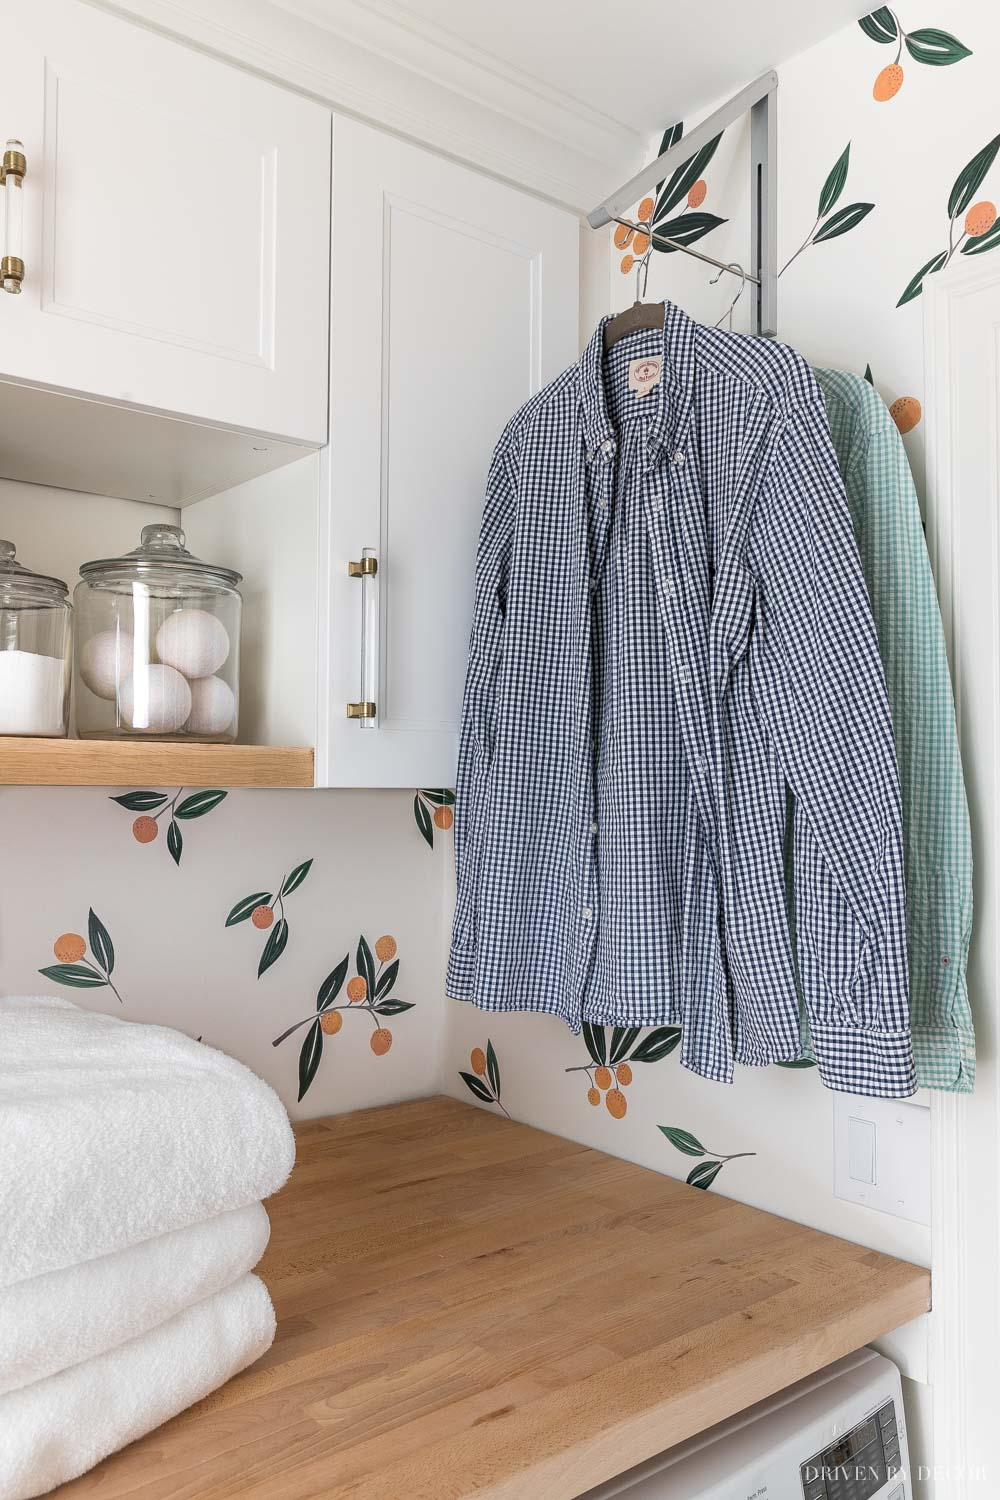 Love this retractable clothes rack for hanging clothes to dry in our laundry room!